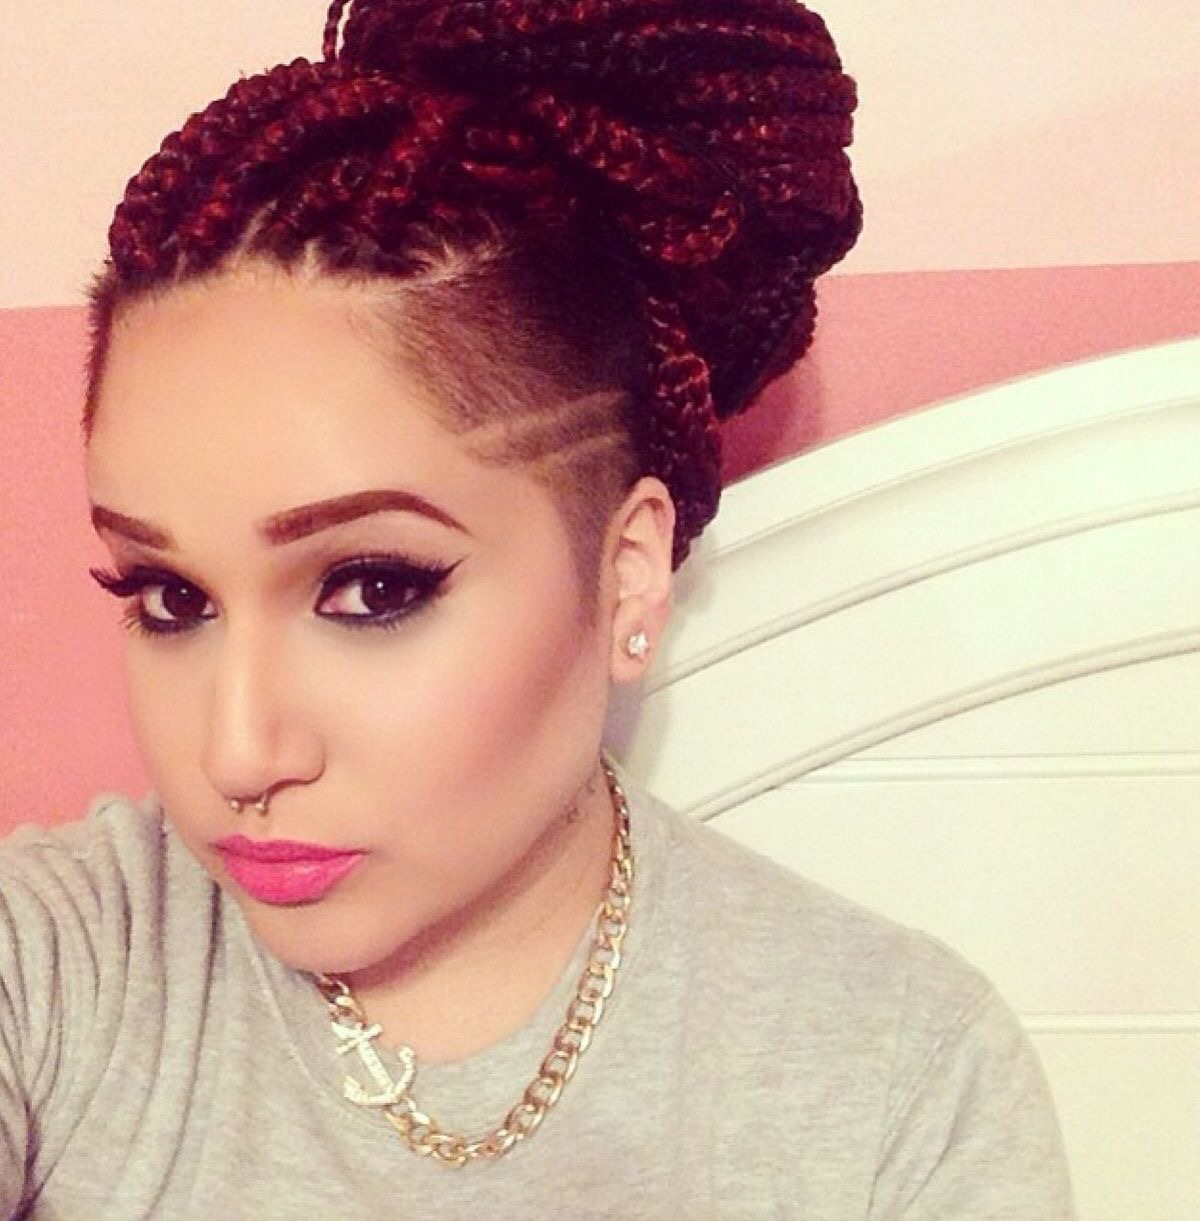 Style Inspiration Shaved Sides With Braids Or Twists